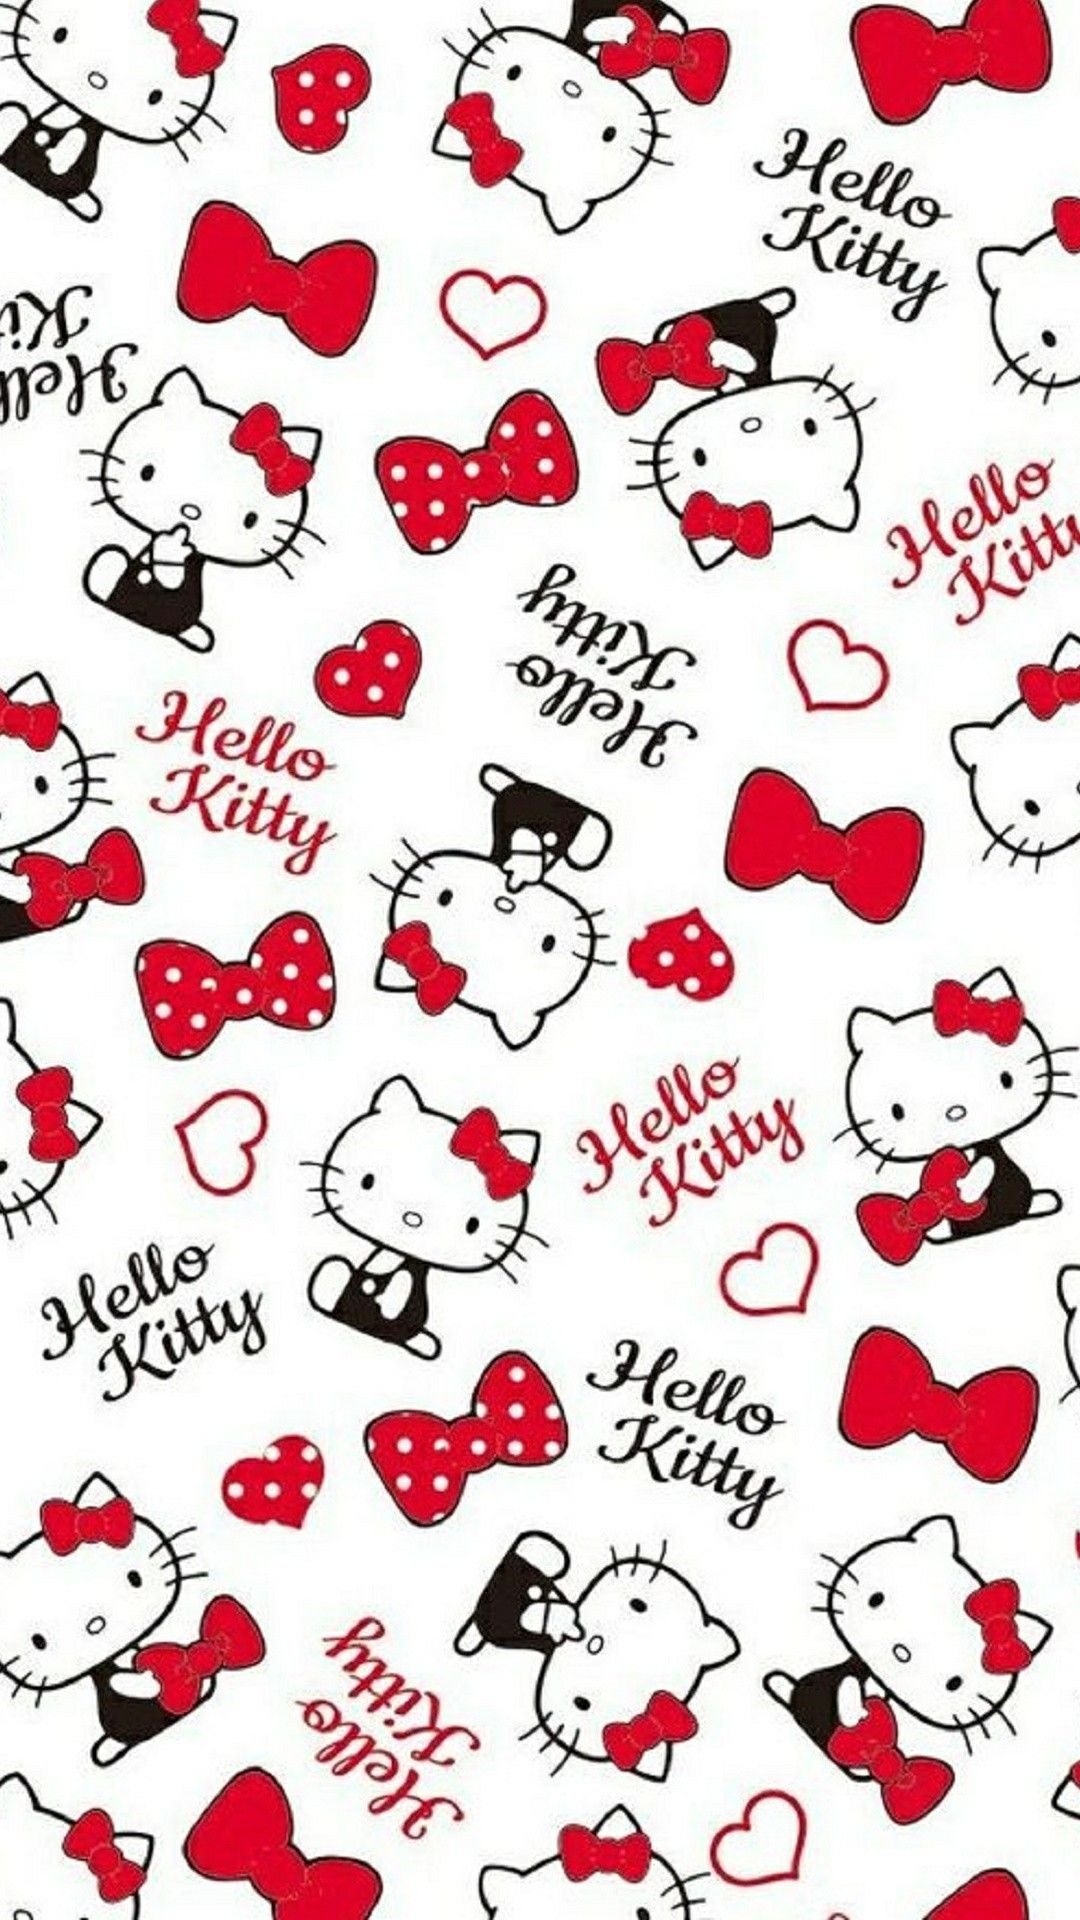 Amazing Wallpaper Hello Kitty Painting - 267a25349d65ebfd7b089377370b5557  Pictures_285093.jpg